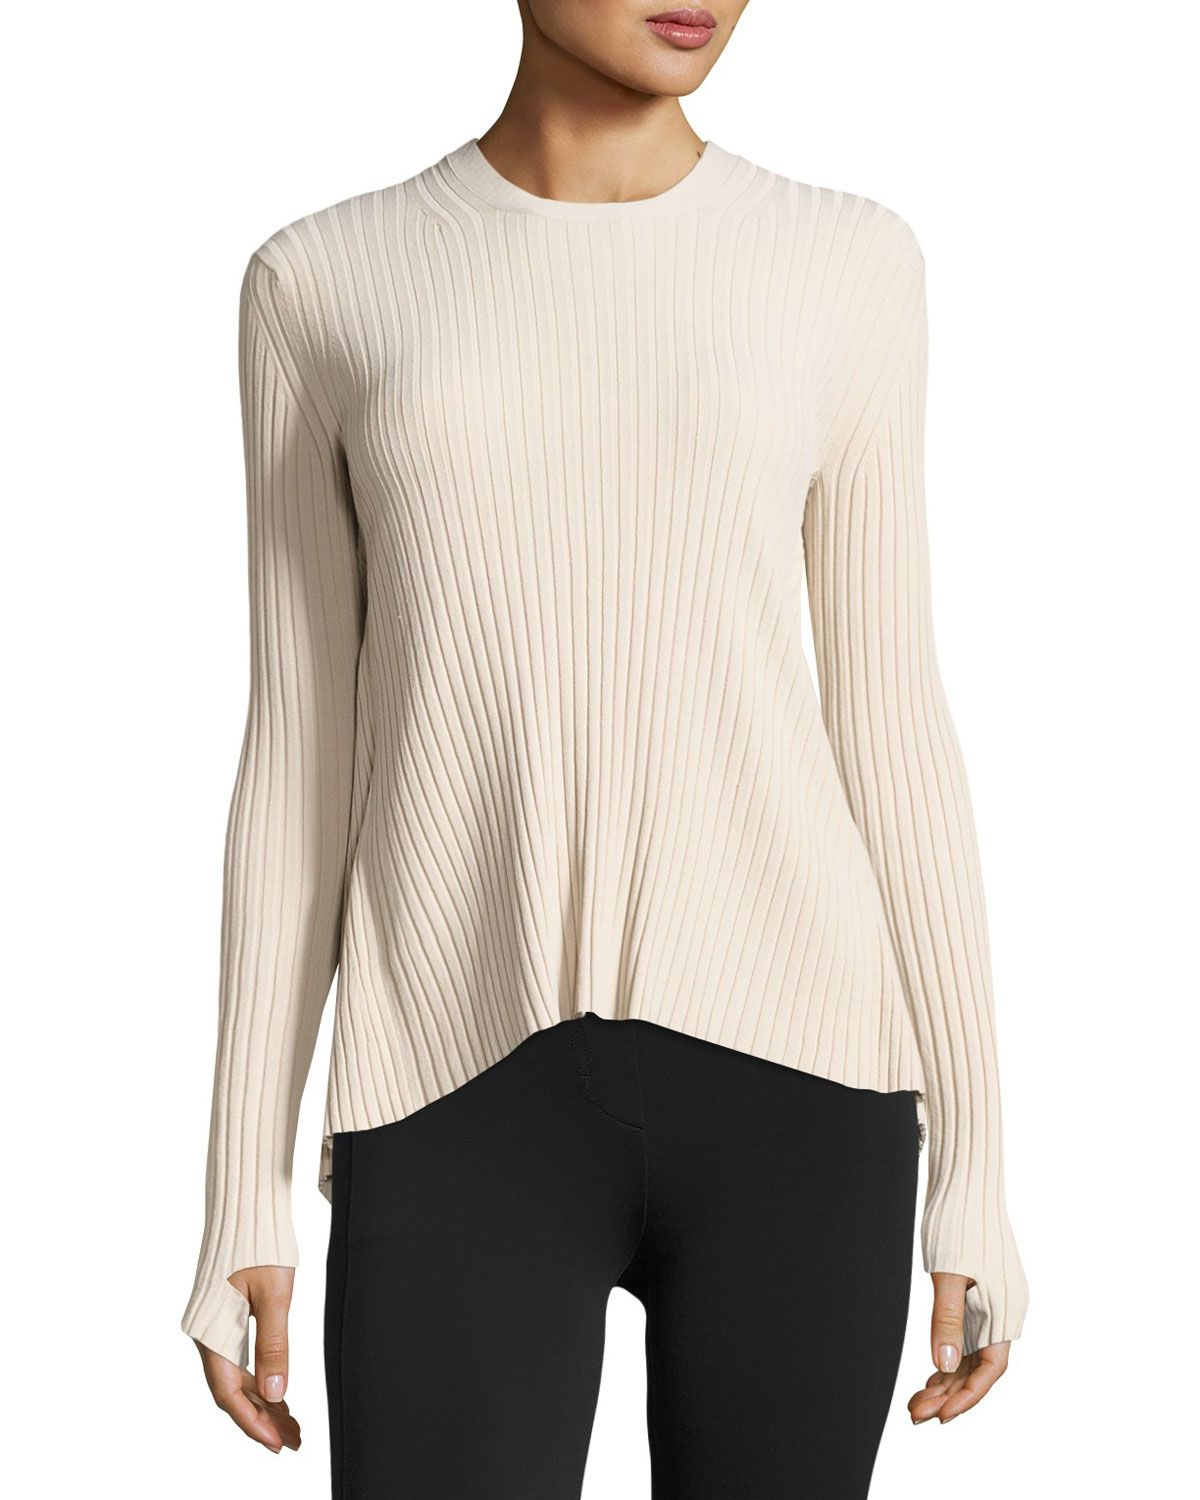 Women's Sweater with Tie